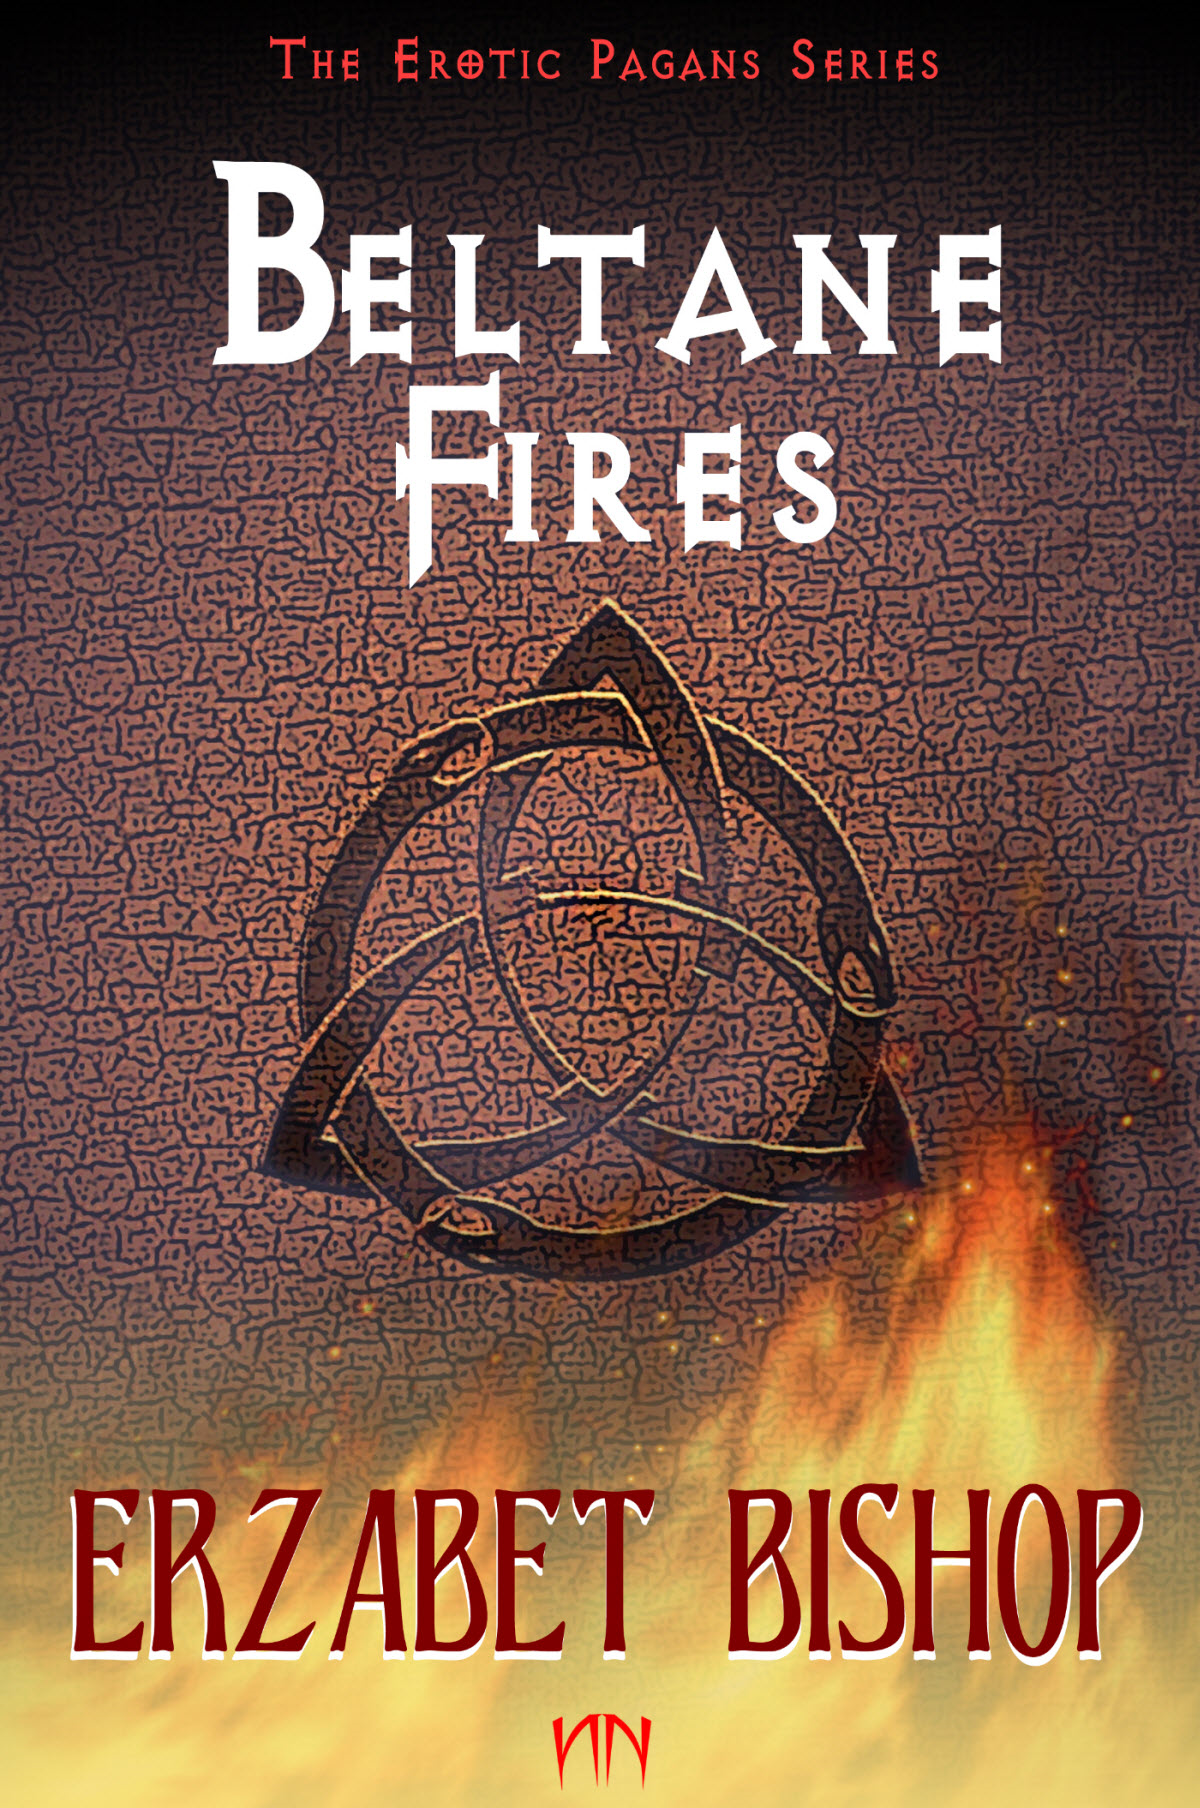 The Erotic Pagans Series - Beltane Fires